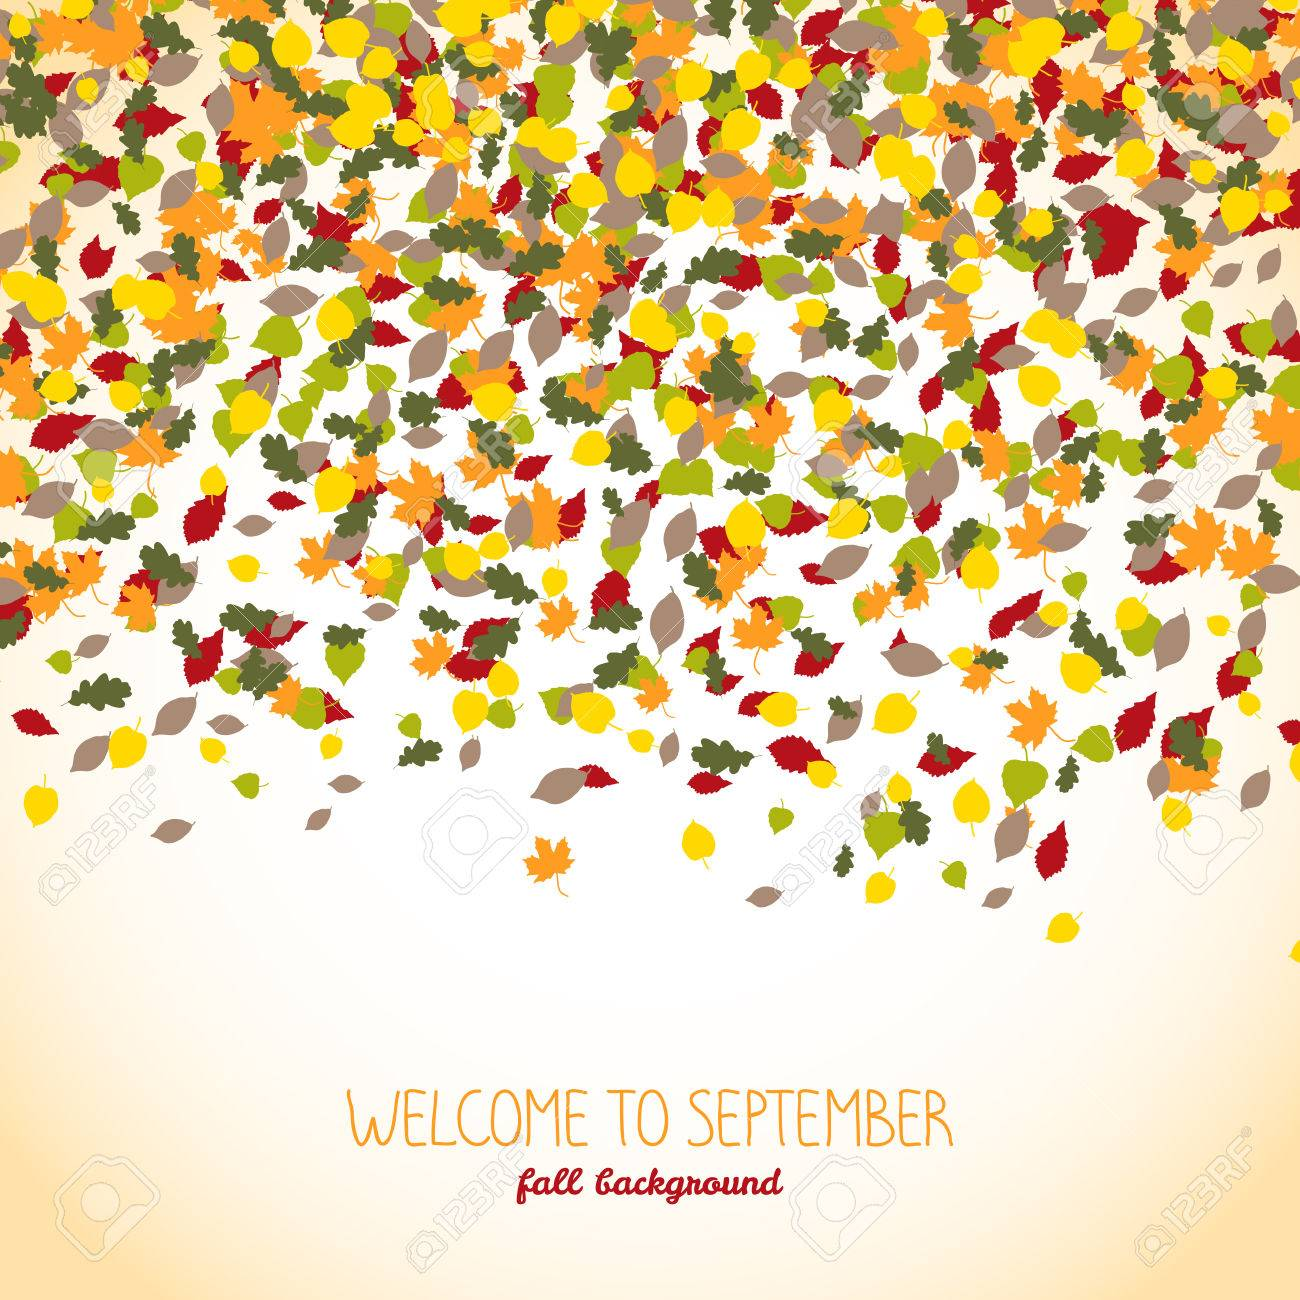 welcome to september autumn banner falling leaves warm background